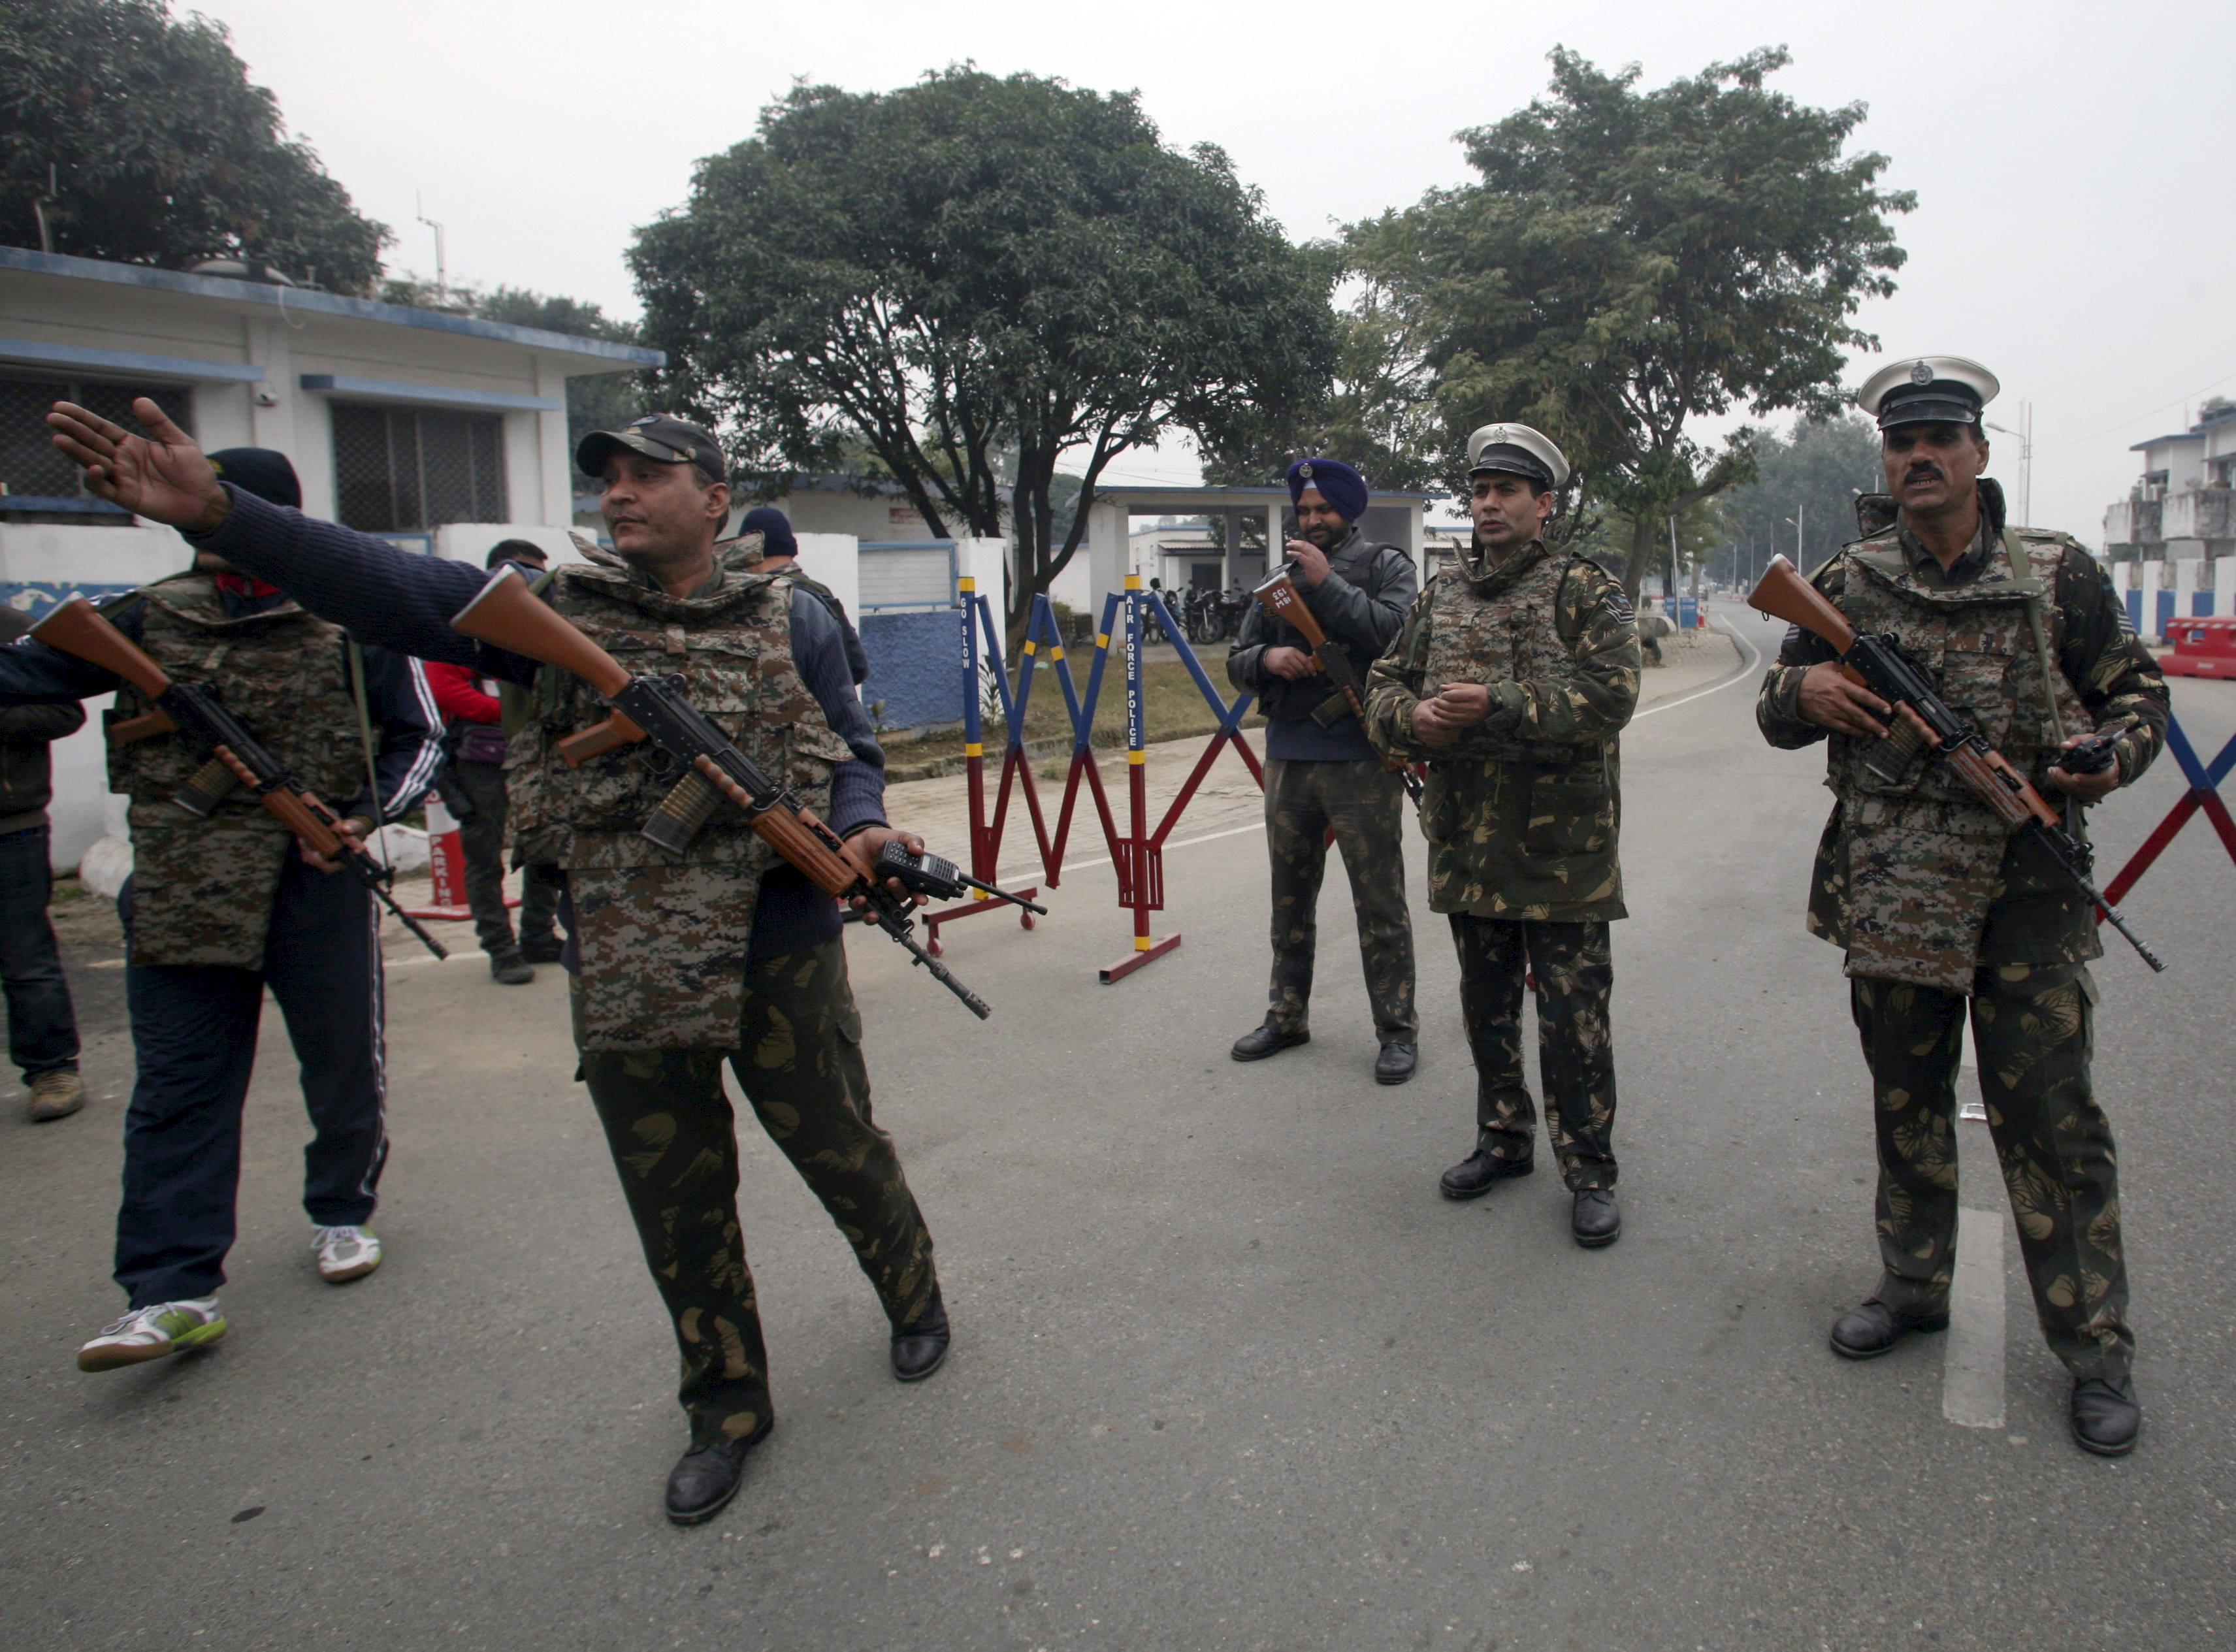 IAF personal with Indian made rifle INSAS during Patahkot terrorist attack